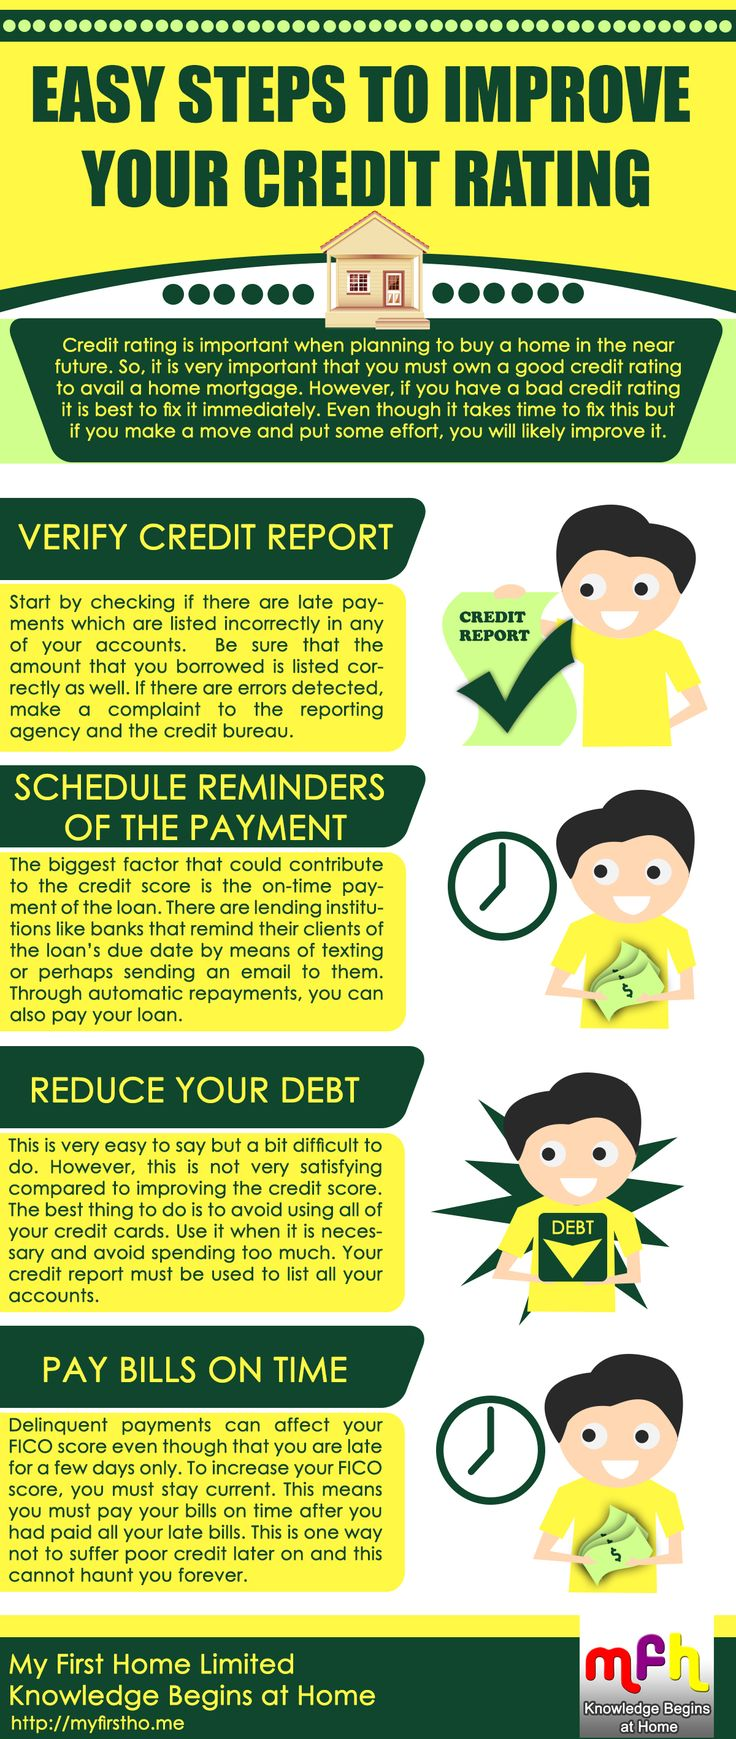 Easy Steps to Improve Your Credit Rating Credit rating is important when planning to buy a home in the near future. So, it is very important that you must own a good credit rating to avail a home mortgage. However, if you have a bad credit rating it is best to fix it immediately. Even though it takes time to fix this but if you make a move and put some effort, you will likely improve it. Like. Share. Tag. http://www.facebook.com/MyFirstHomeCommunity http://myfirstho.me